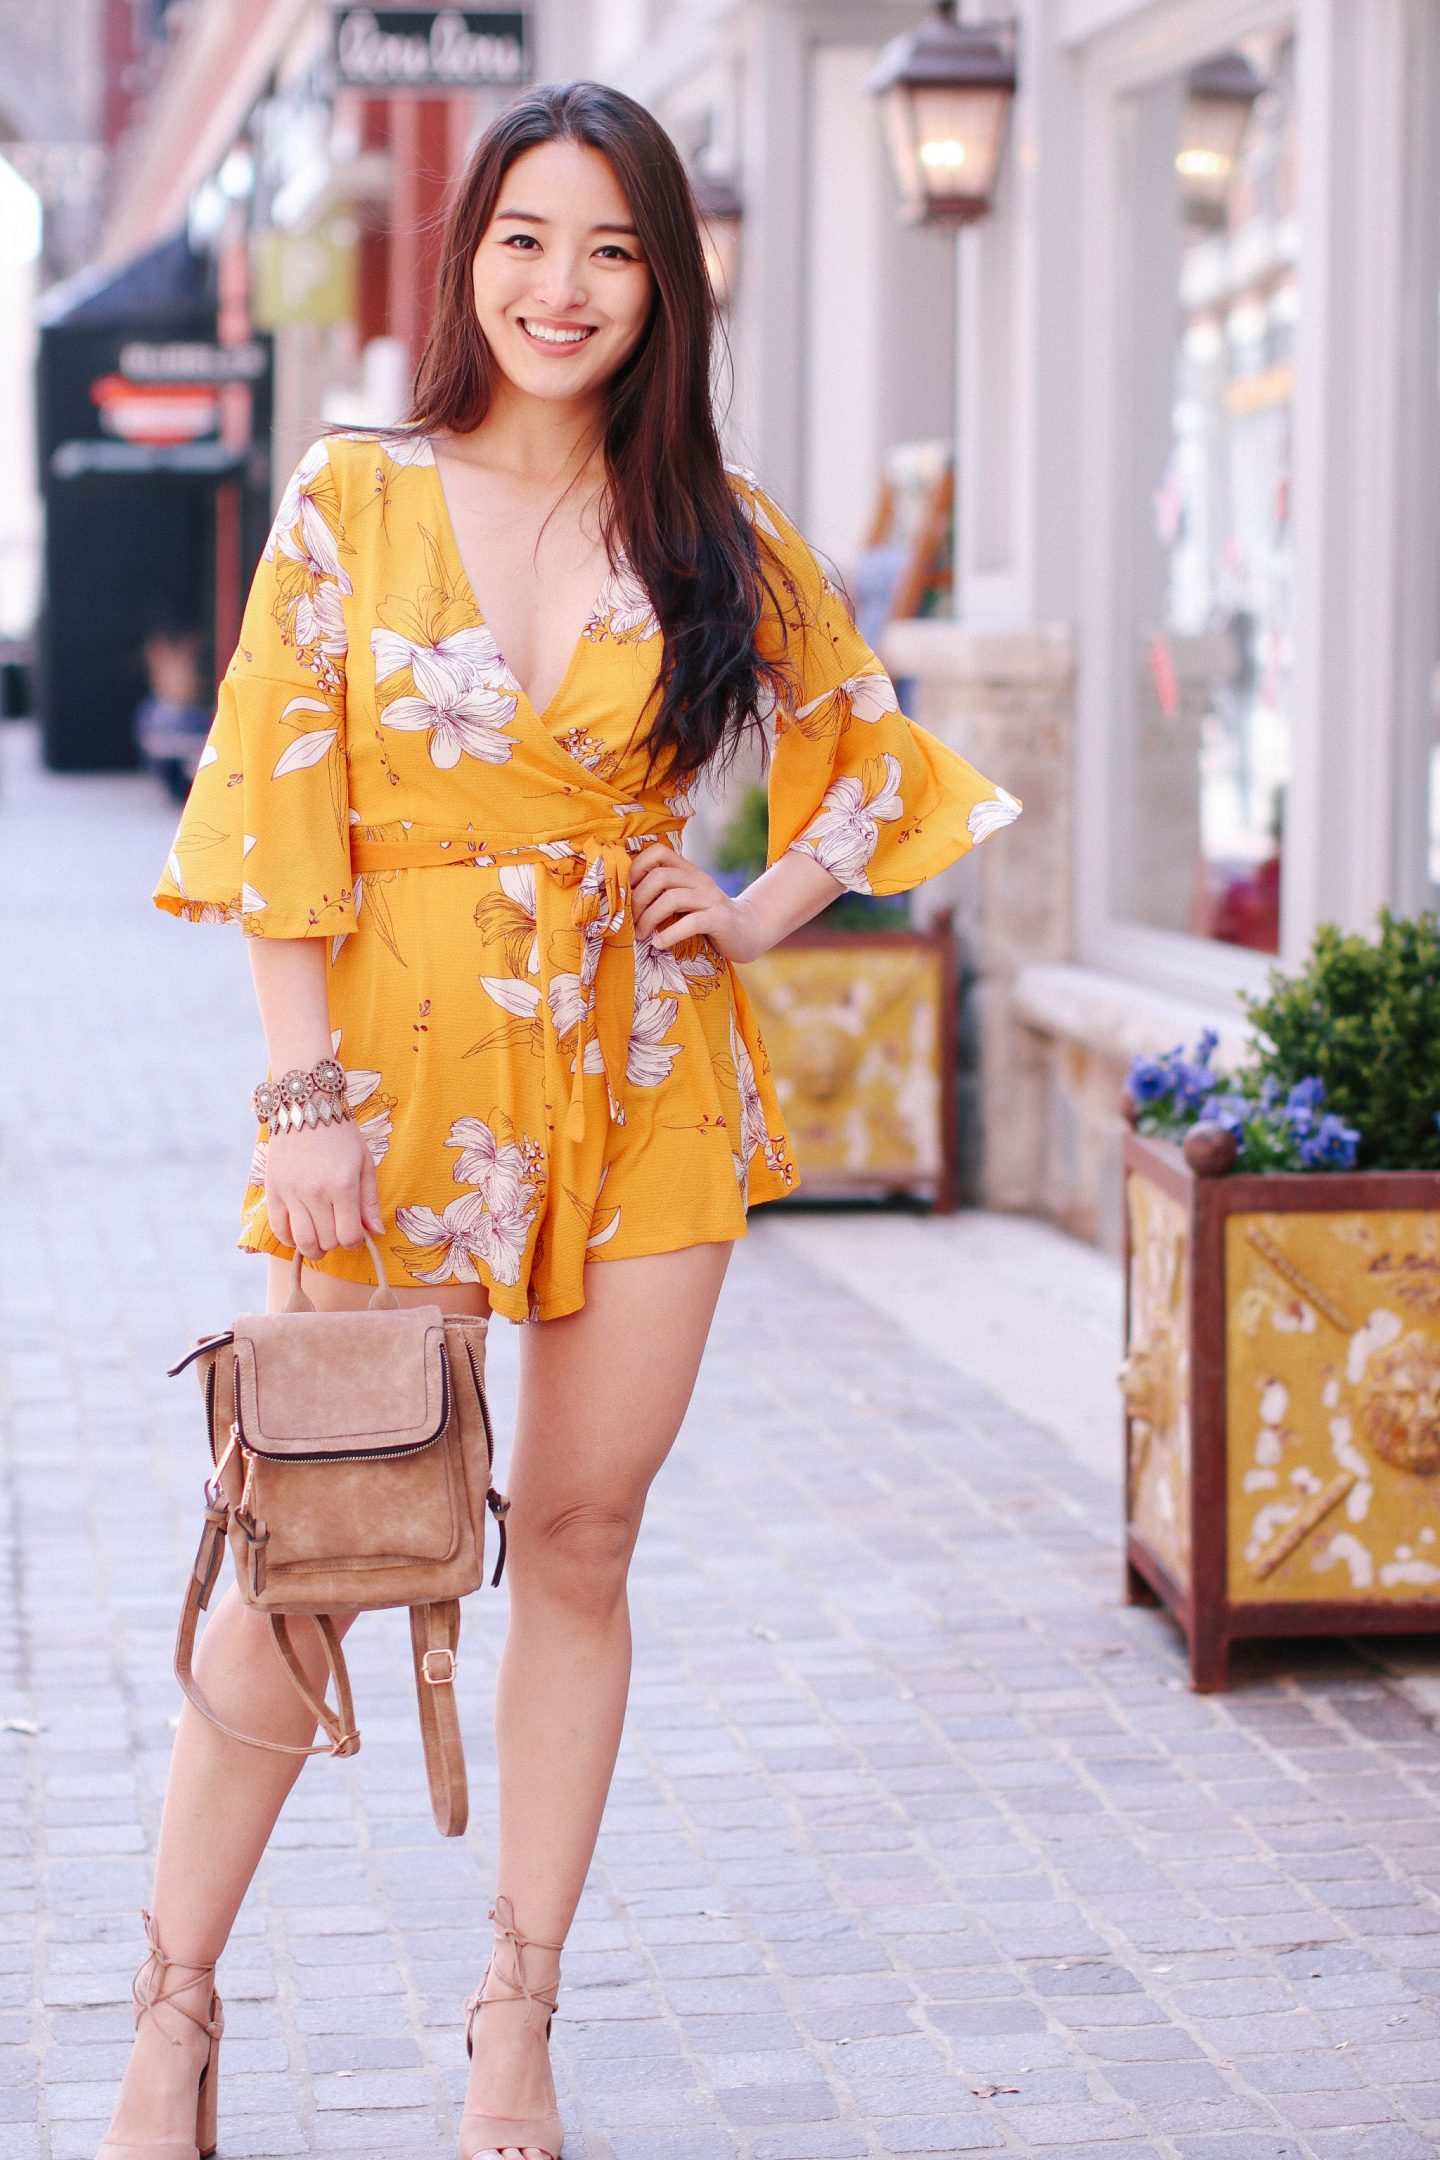 Mustard Playsuit - Mustard Playsuit - How to Style a Floral Romper featured by popular California fashion blogger, Lizzie In Lace